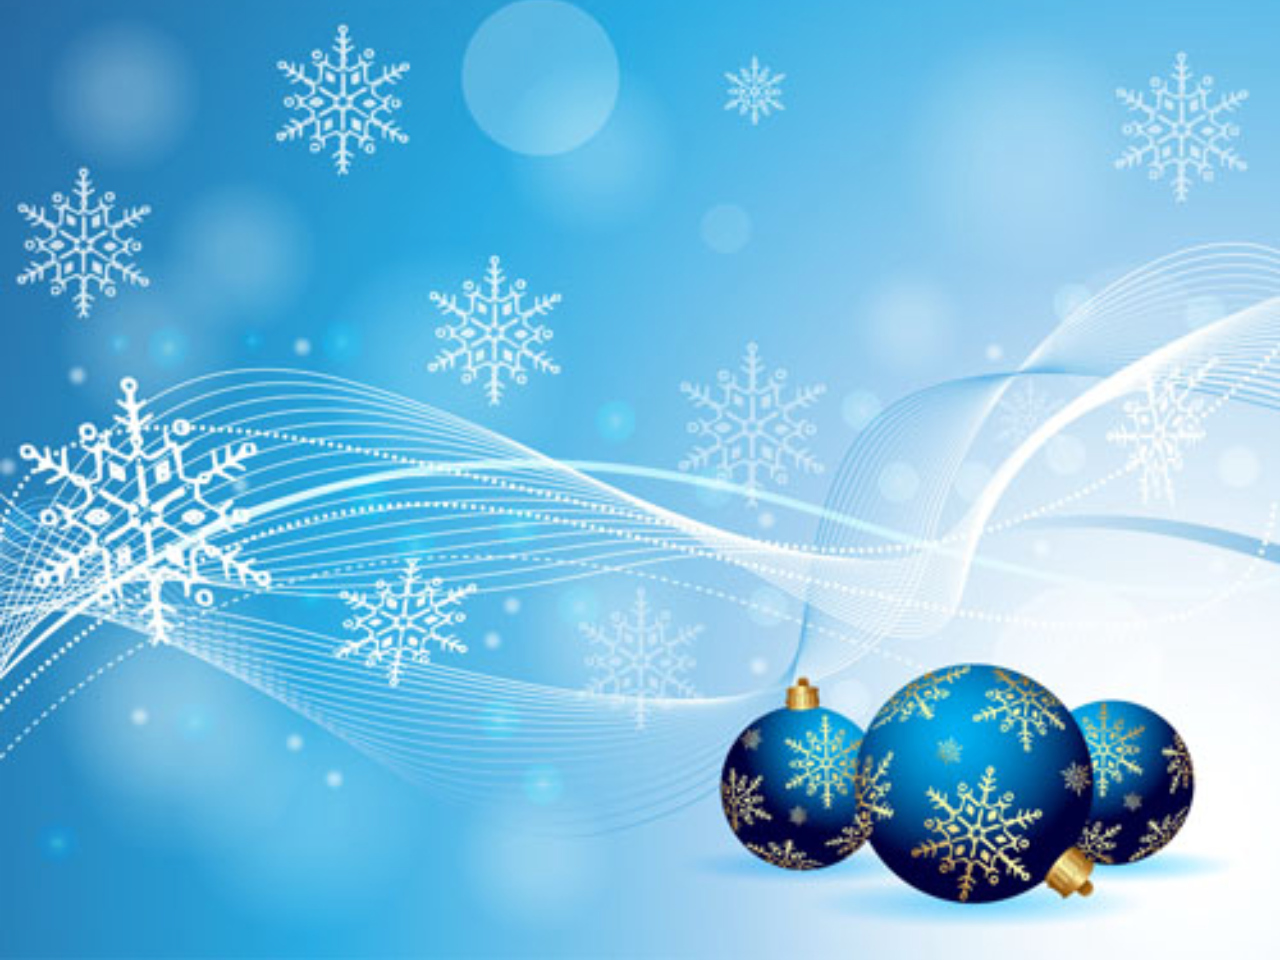 Images Of Christmas, Blue Decoration Balls  571.82 Kb